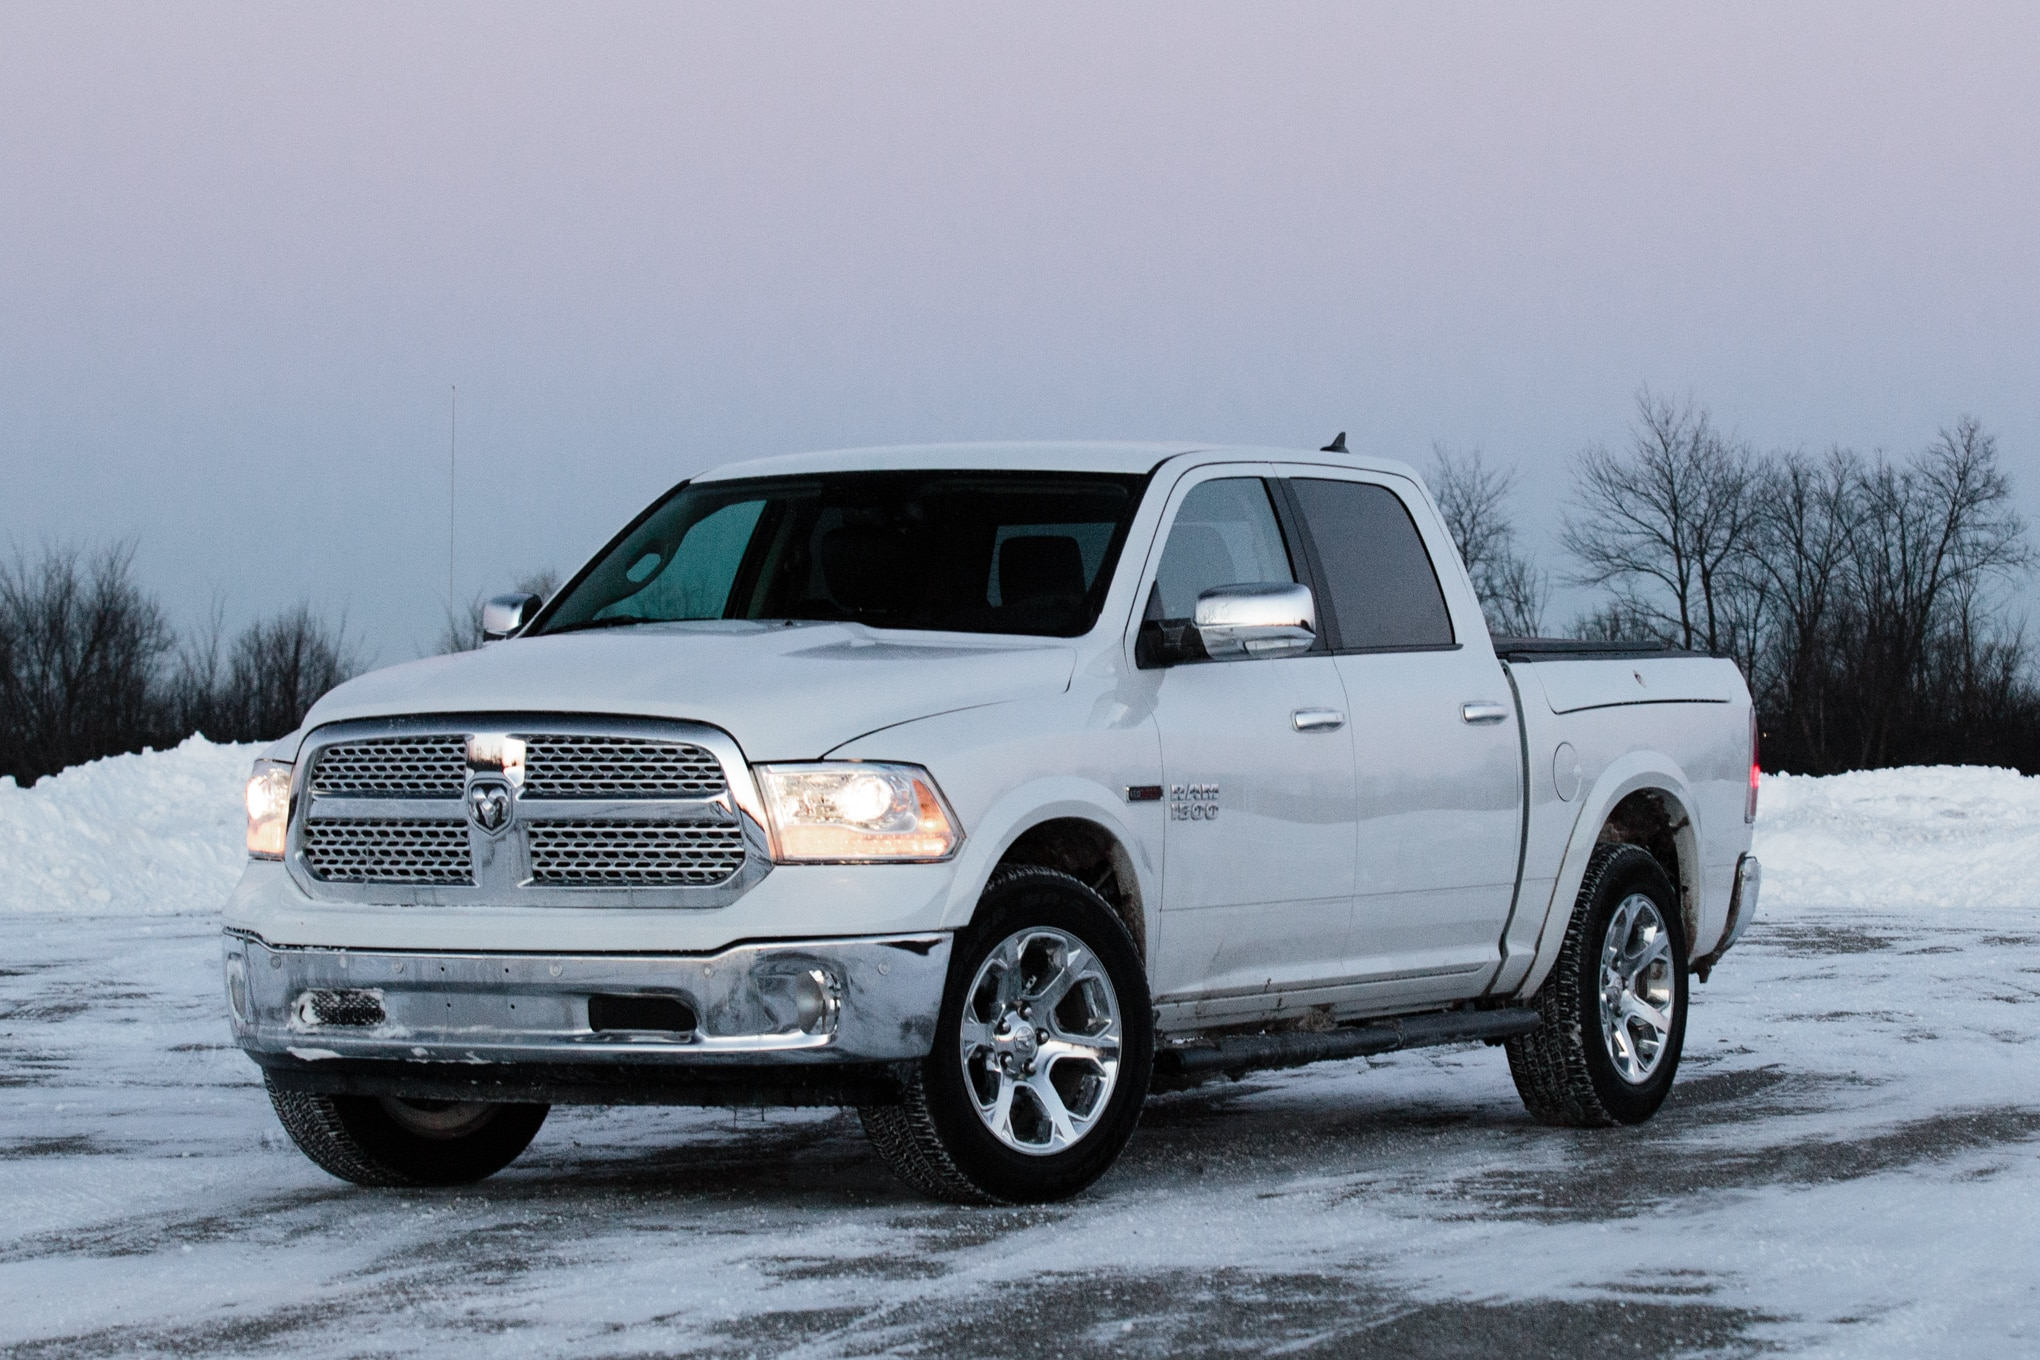 2014 Ram 1500 EcoDiesel Front View